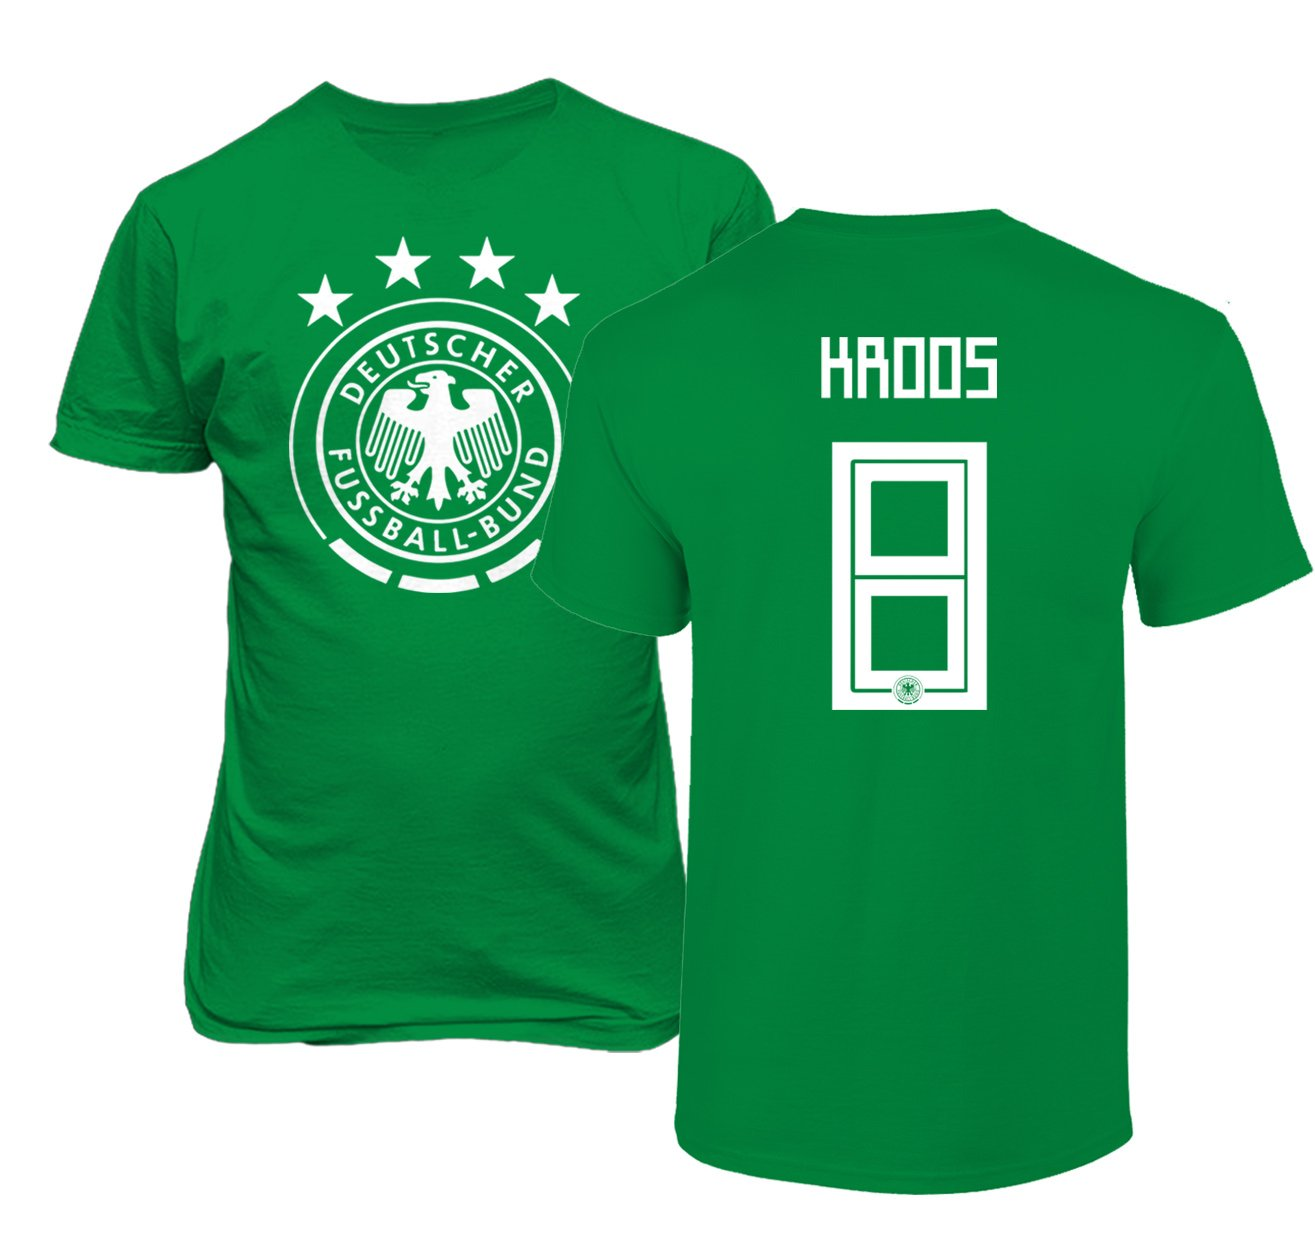 30f66c98 Amazon.com : Tcamp Germany 2018 National Soccer #8 Toni KROOS World  Championship Men's T-Shirt : Sports & Outdoors